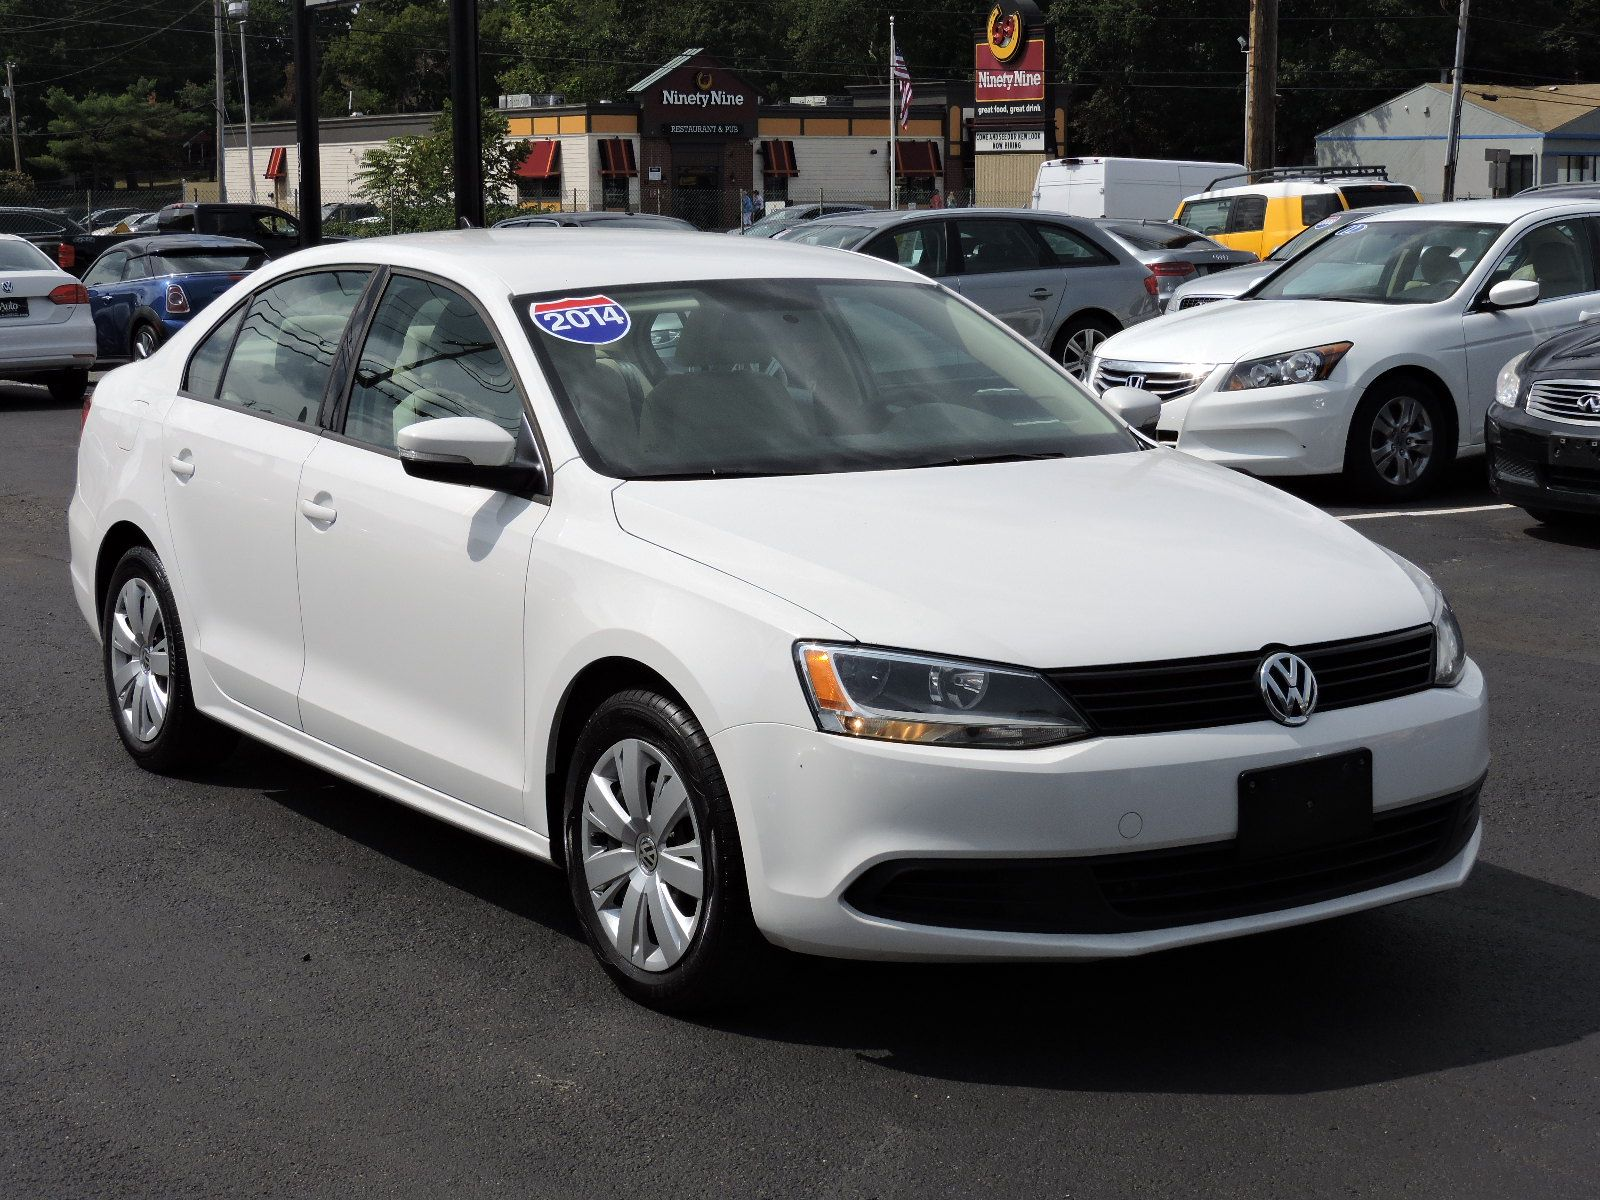 2014 Volkswagen Jetta Sedan SE - 5 Speed Manual